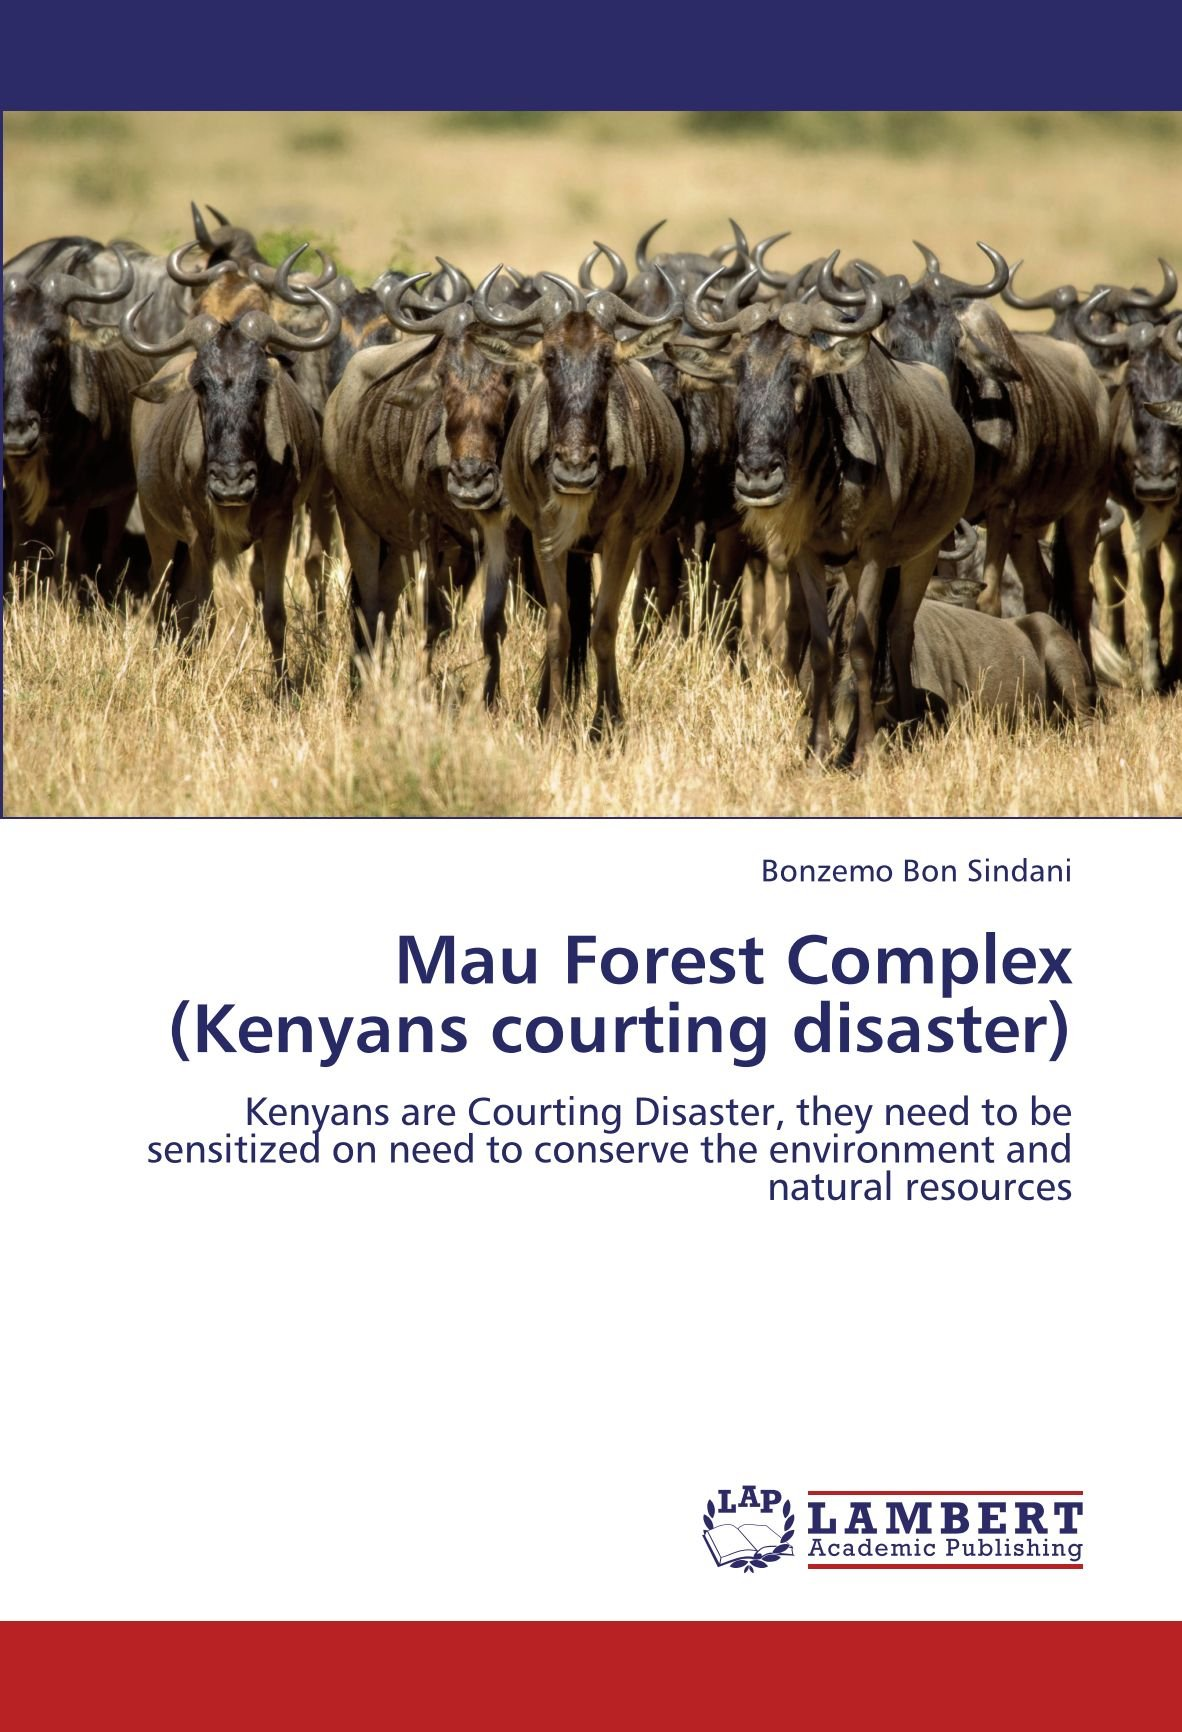 Read Online Mau Forest Complex (Kenyans courting disaster): Kenyans are Courting Disaster, they need to be sensitized on need to conserve the environment and natural resources PDF